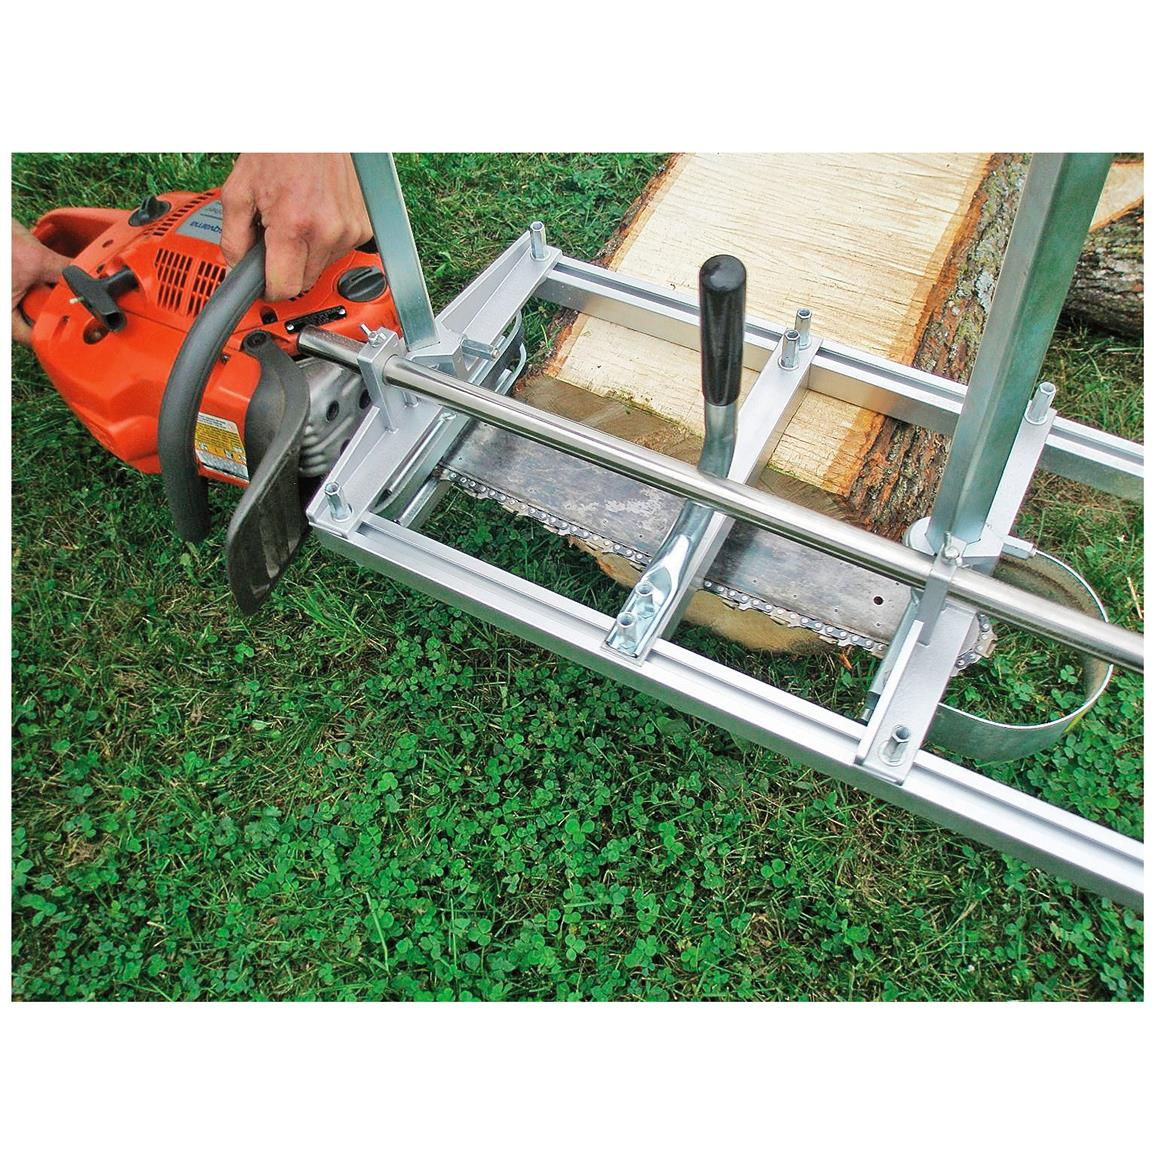 Attaches directly onto your chainsaw bar with fast and easy installation with the included hardware.